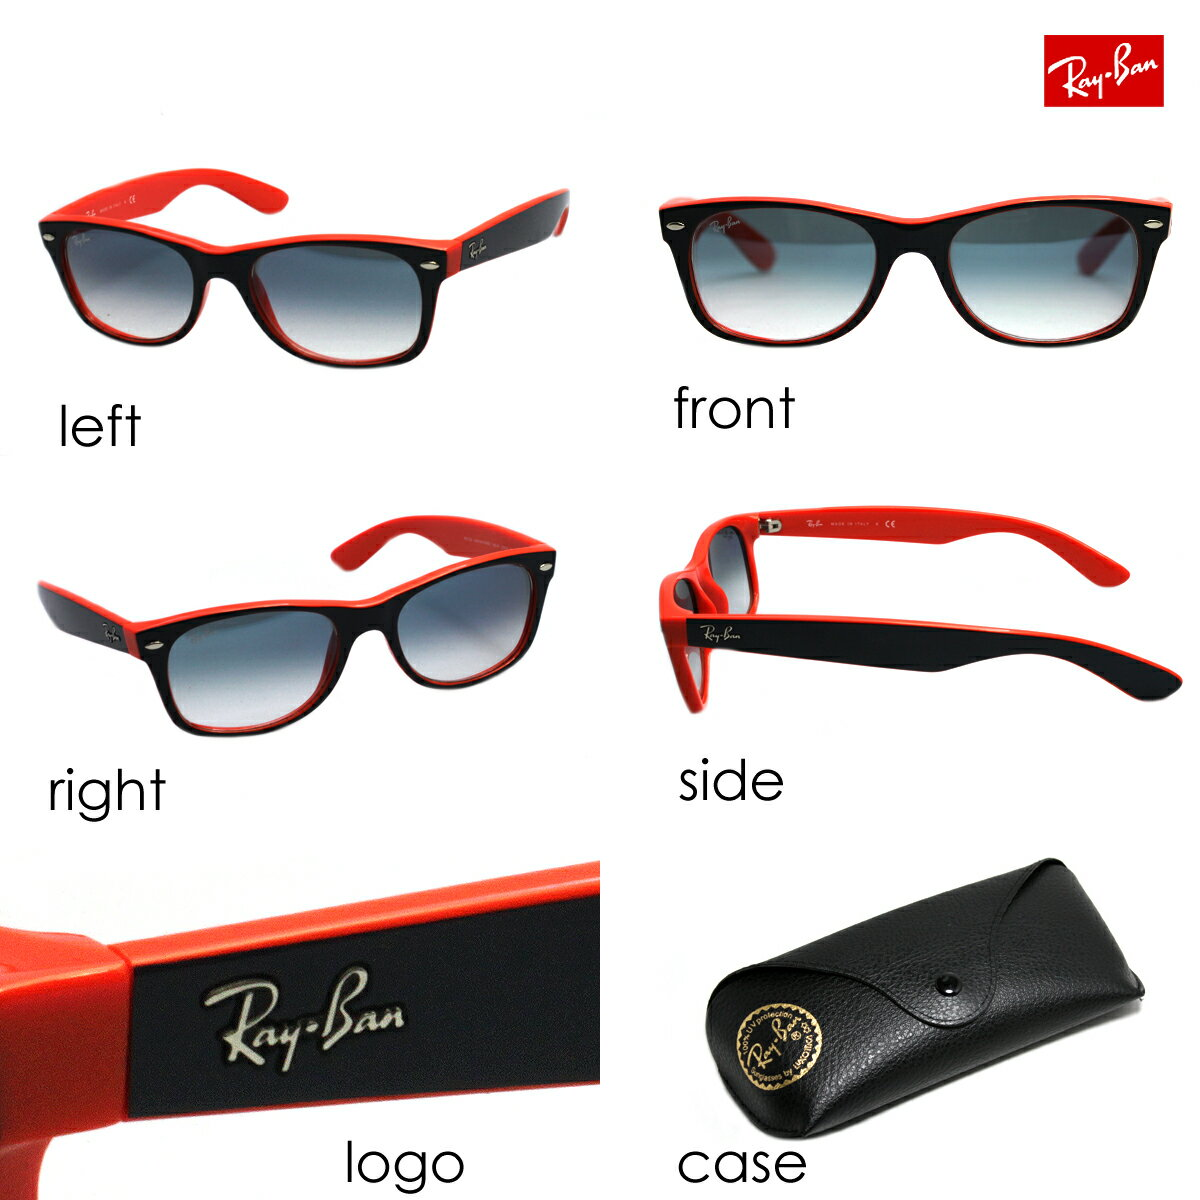 850b7e2826 Exchange Offer On Ray Ban Sunglasses